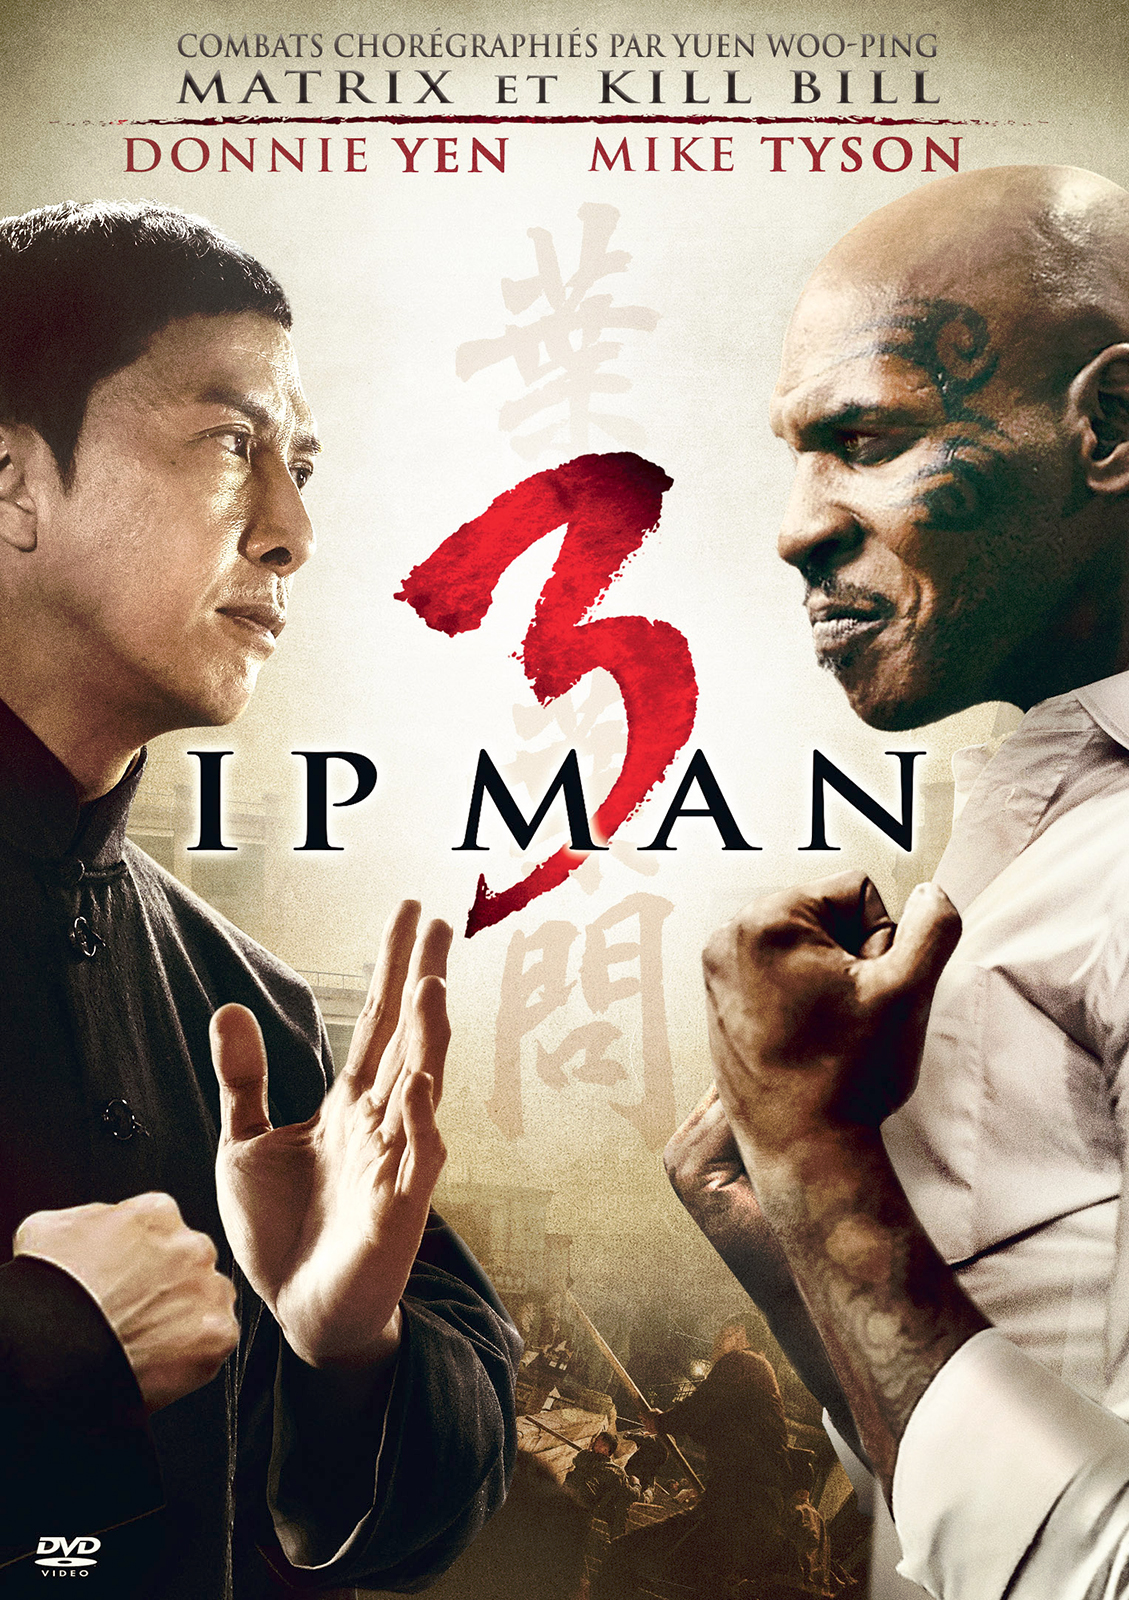 Ip Man 3 ddl